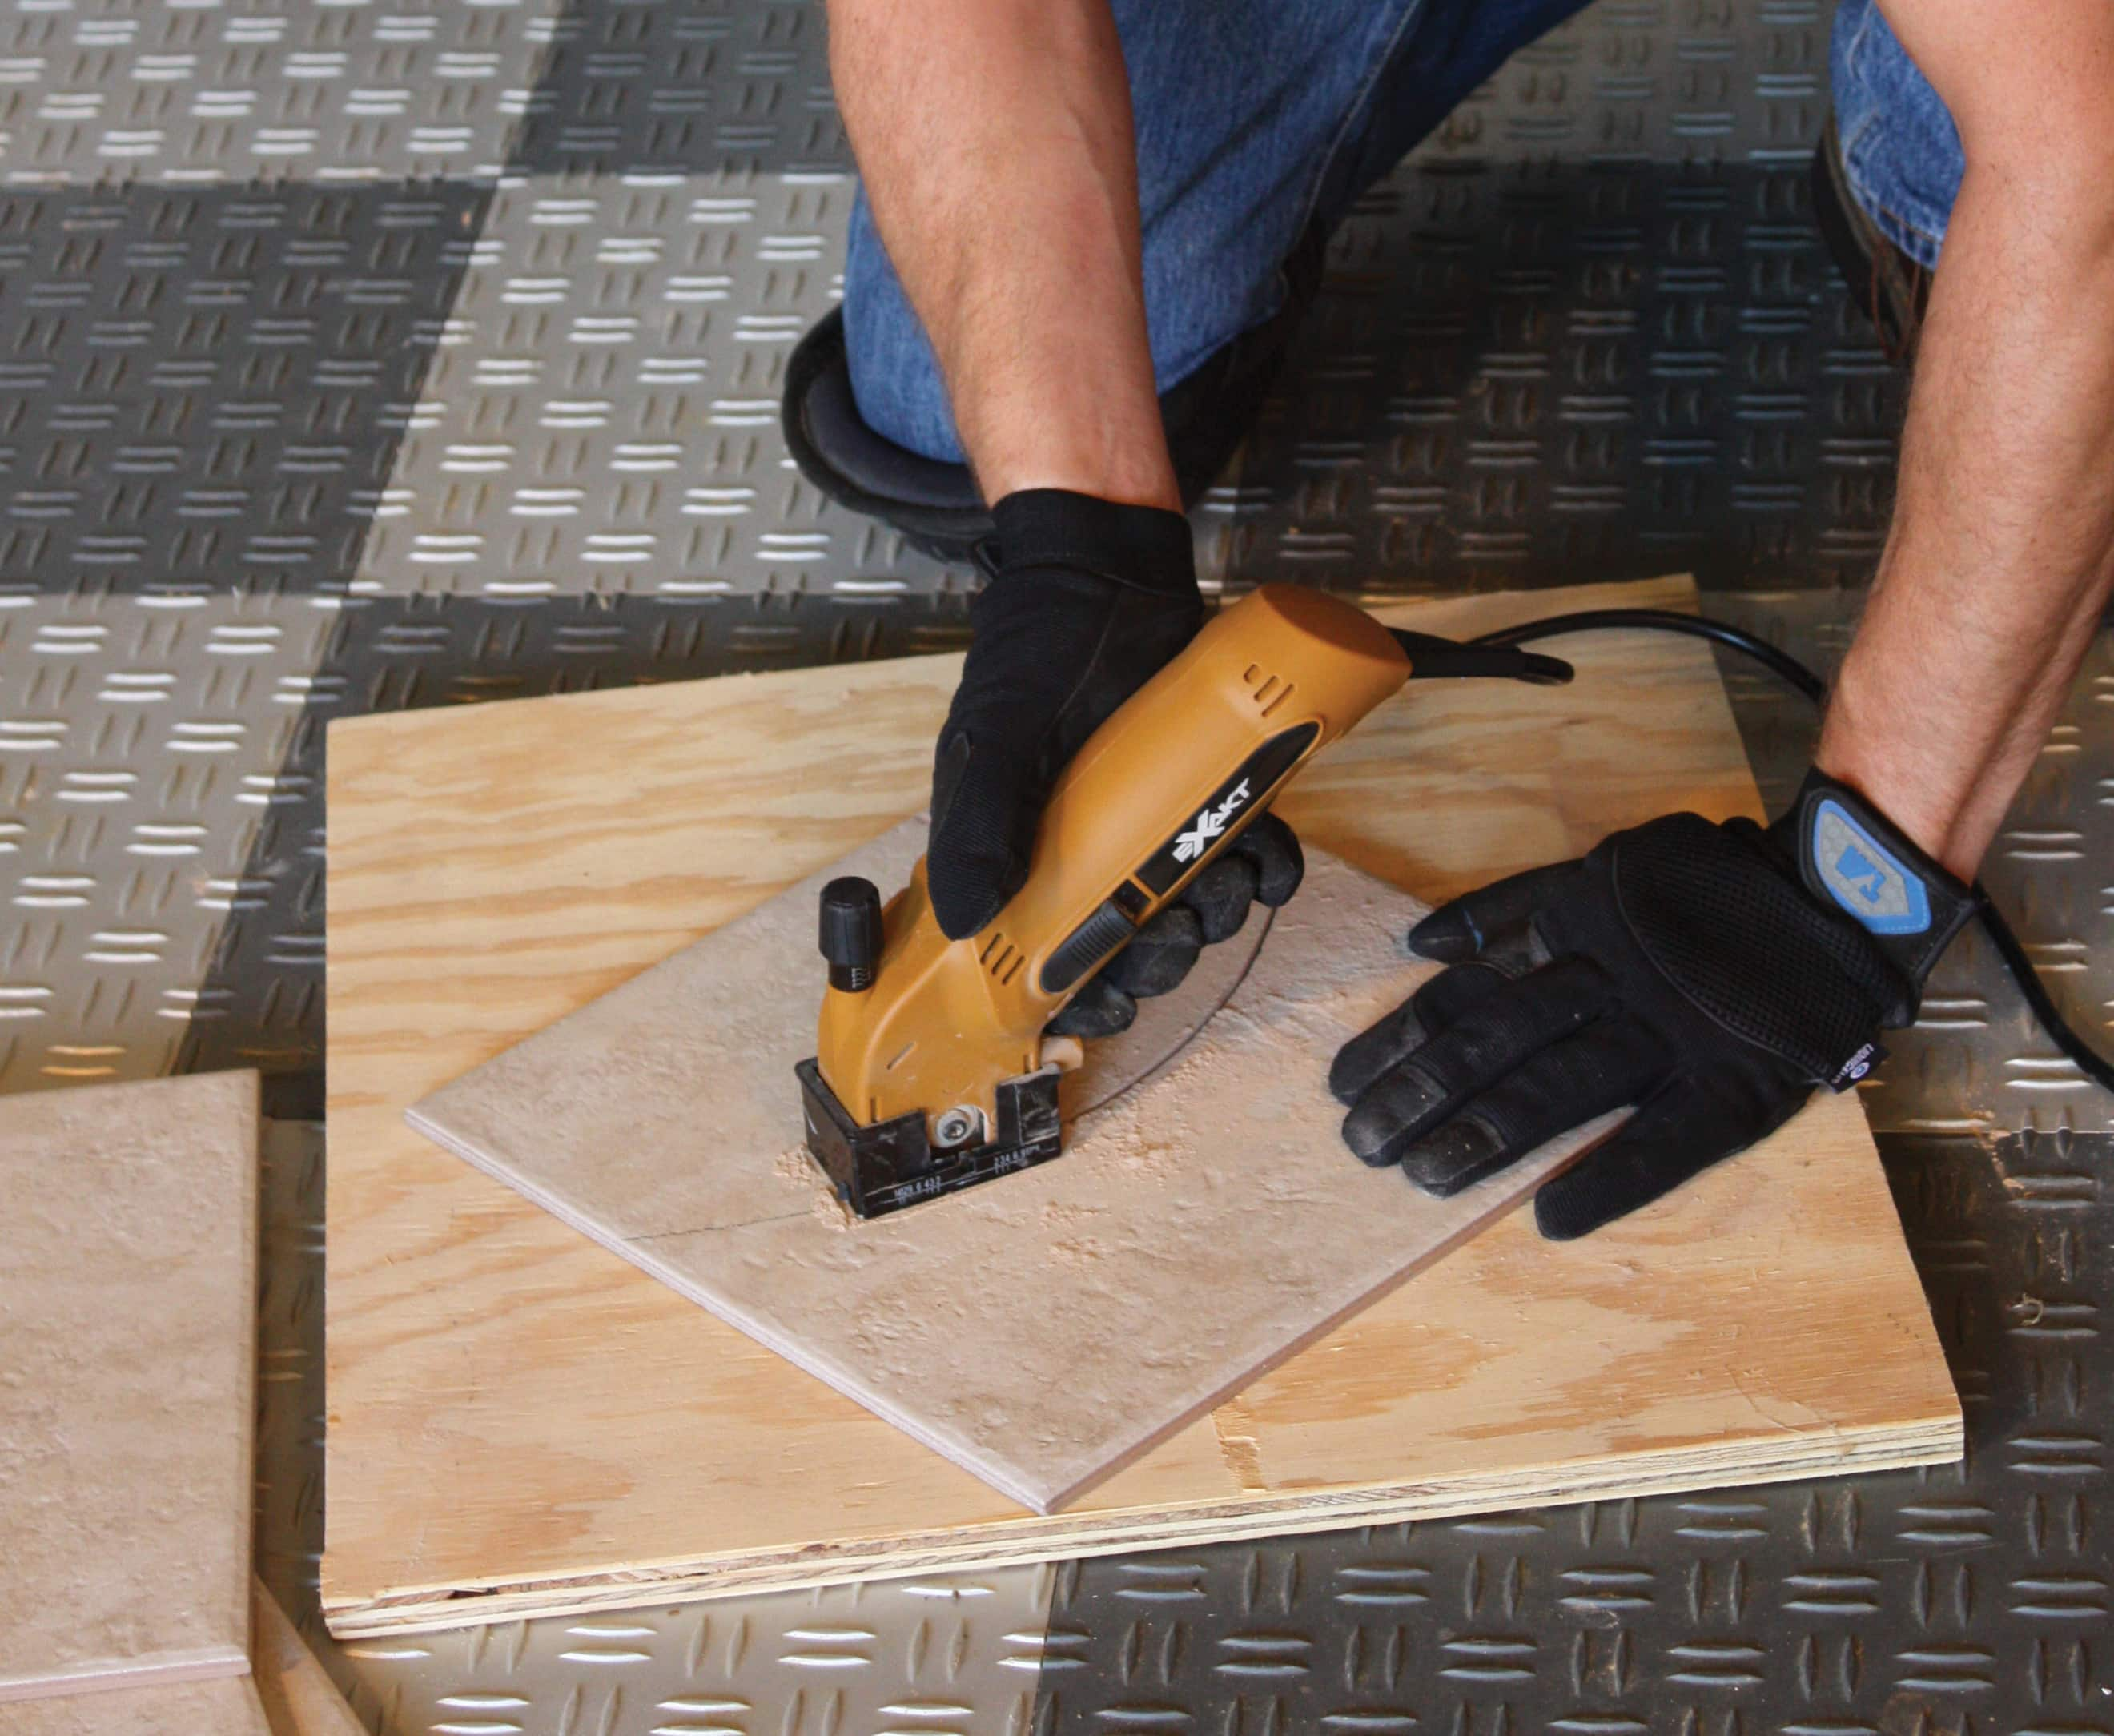 Delightful The New ExaktSaw Has The Ability To Make Plunge Cuts And Curved Cuts In  Ceramic Tile.